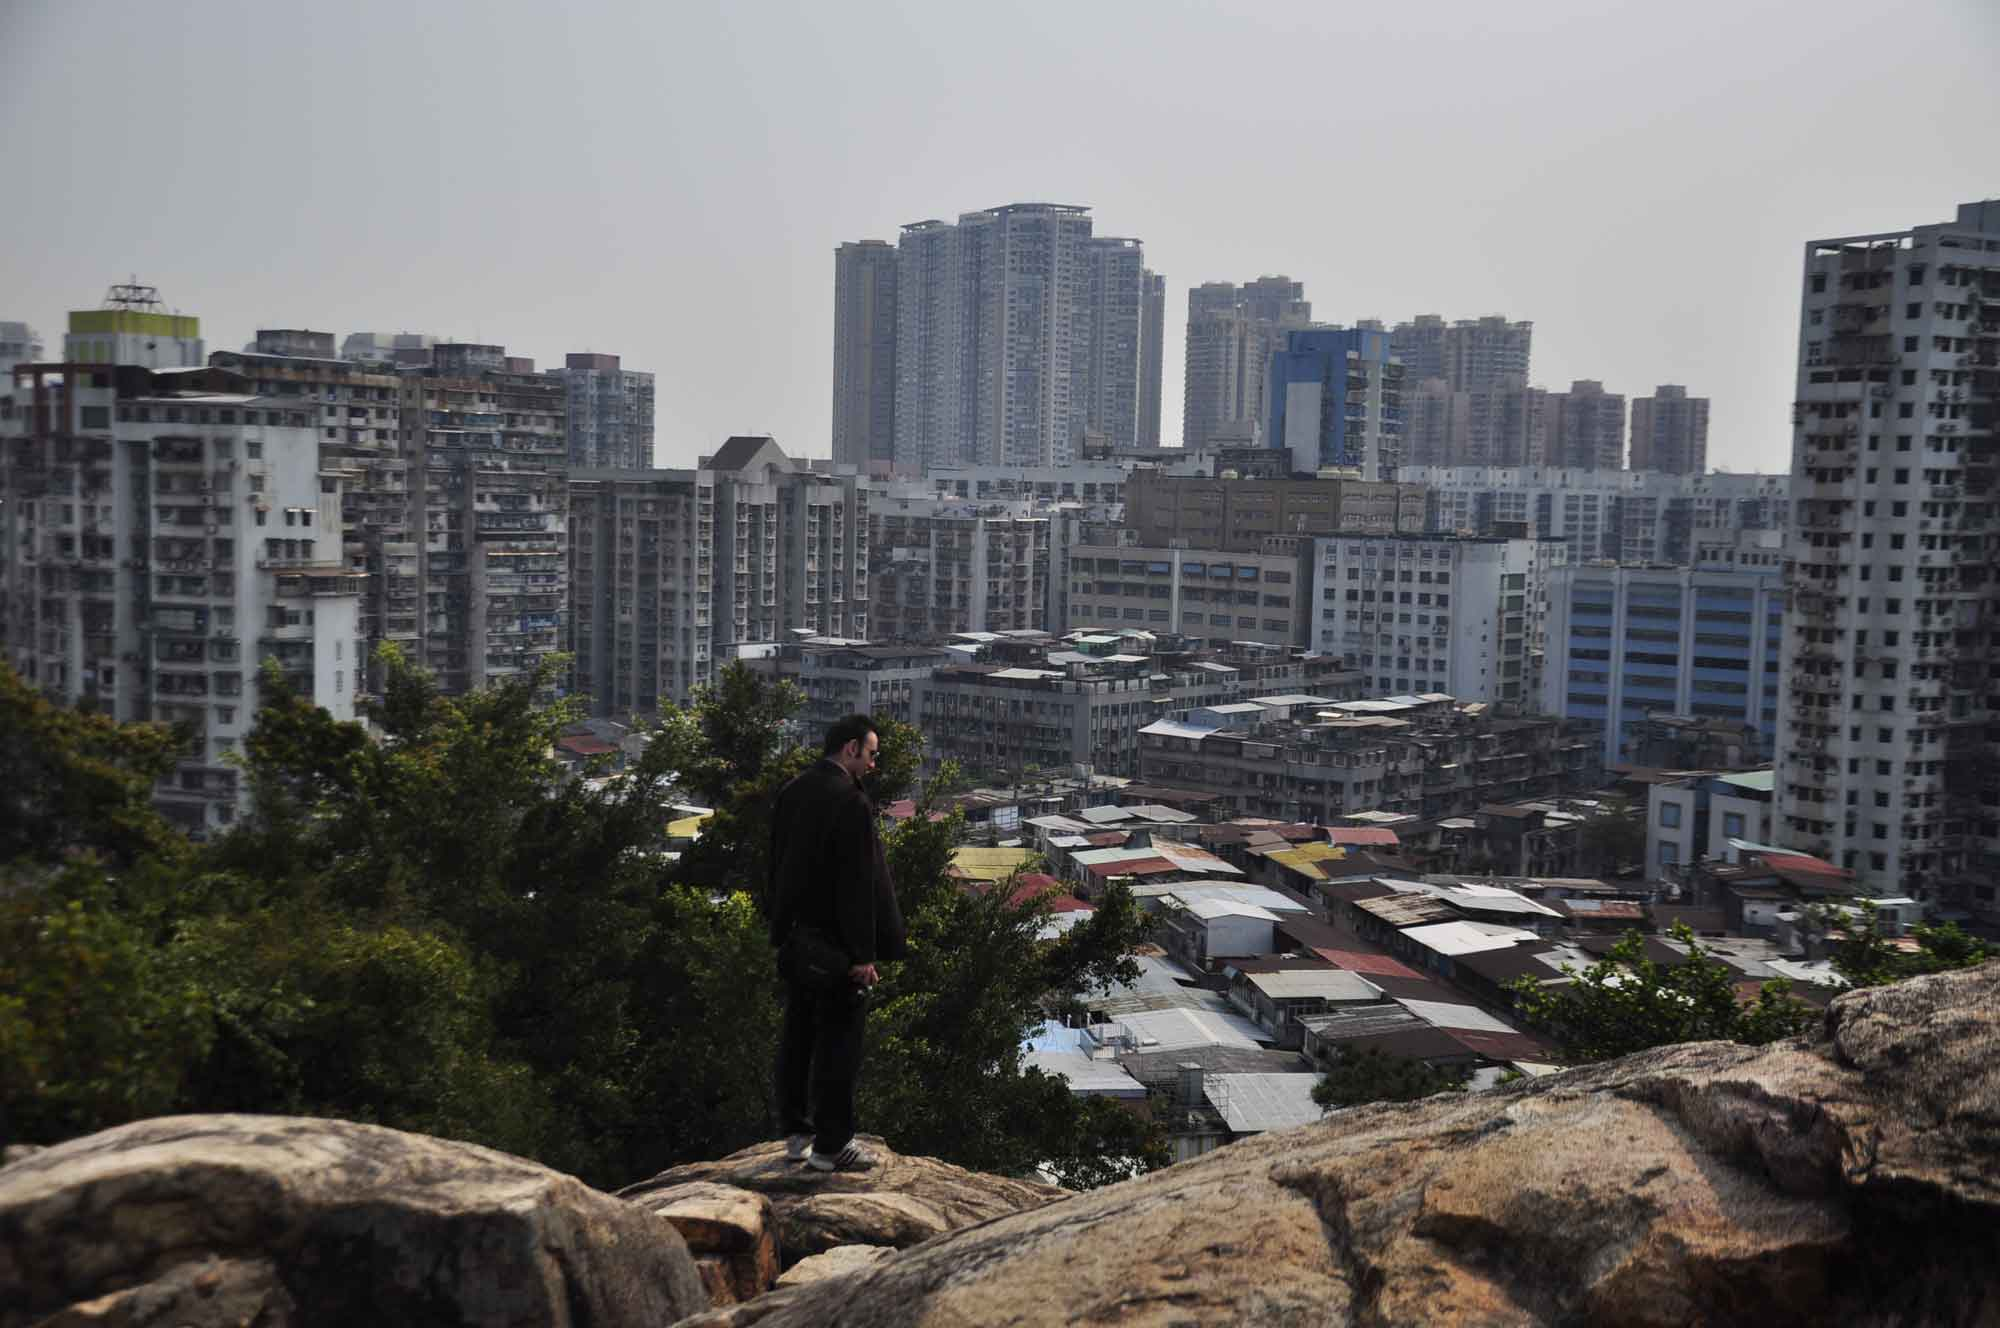 View from Mong Ha Park